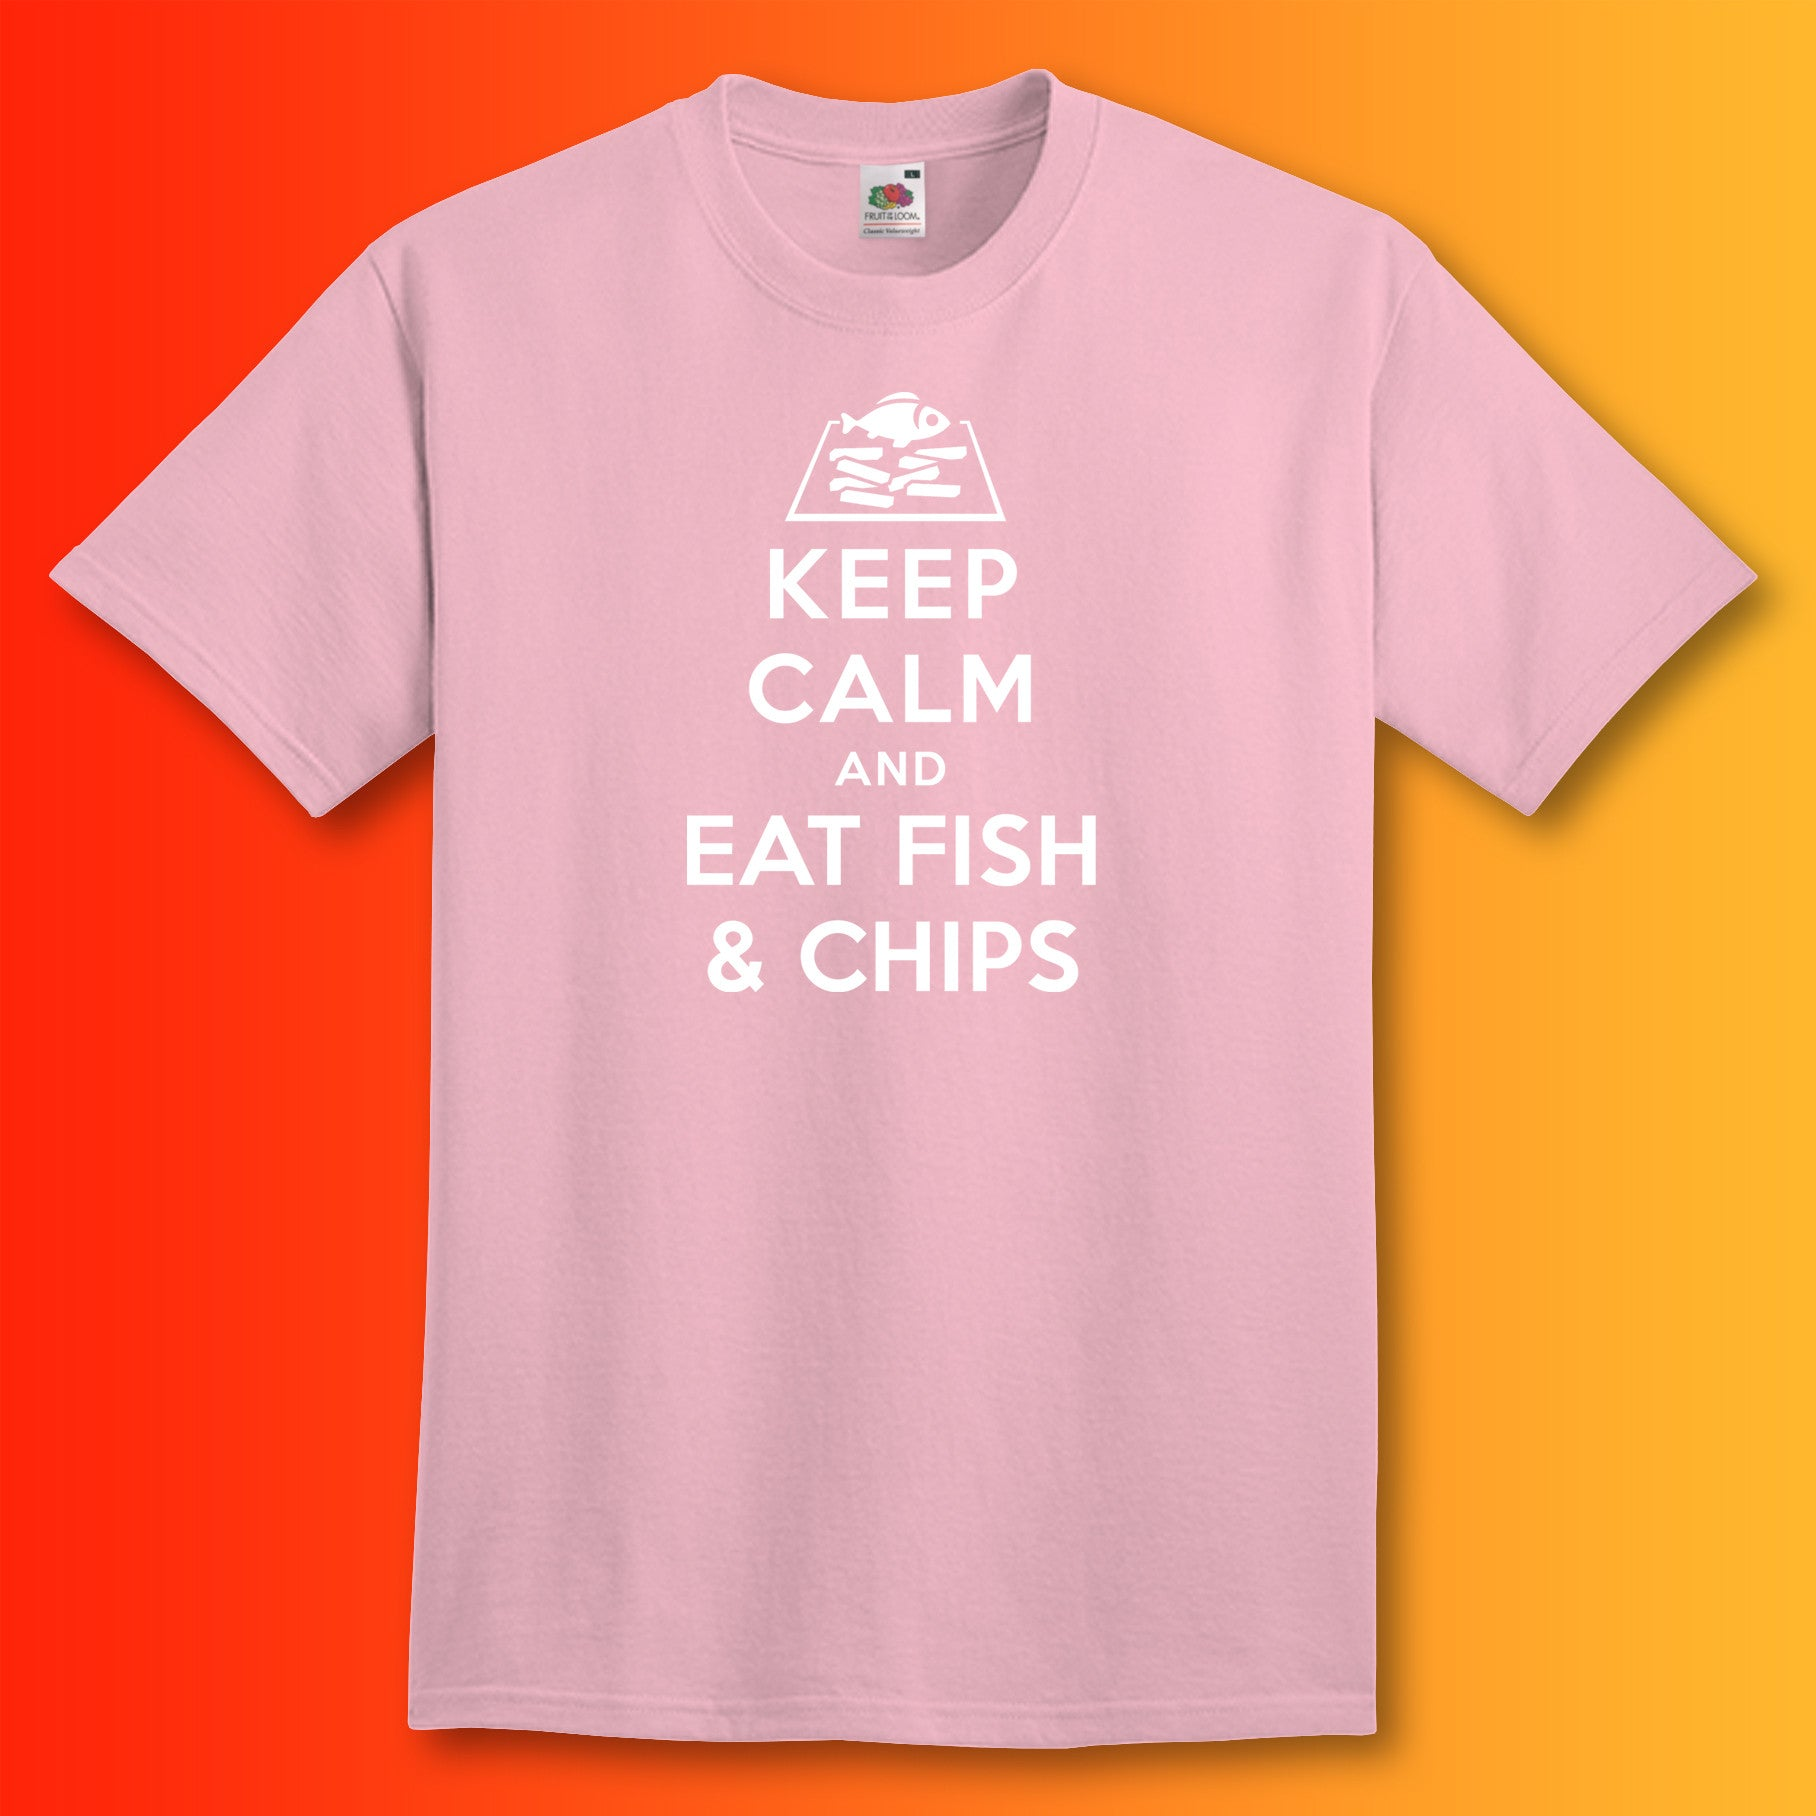 T shirt design keep calm - Fish And Chips T Shirt For Sale Shop Online For Fast Food Clothing Sloganite Com